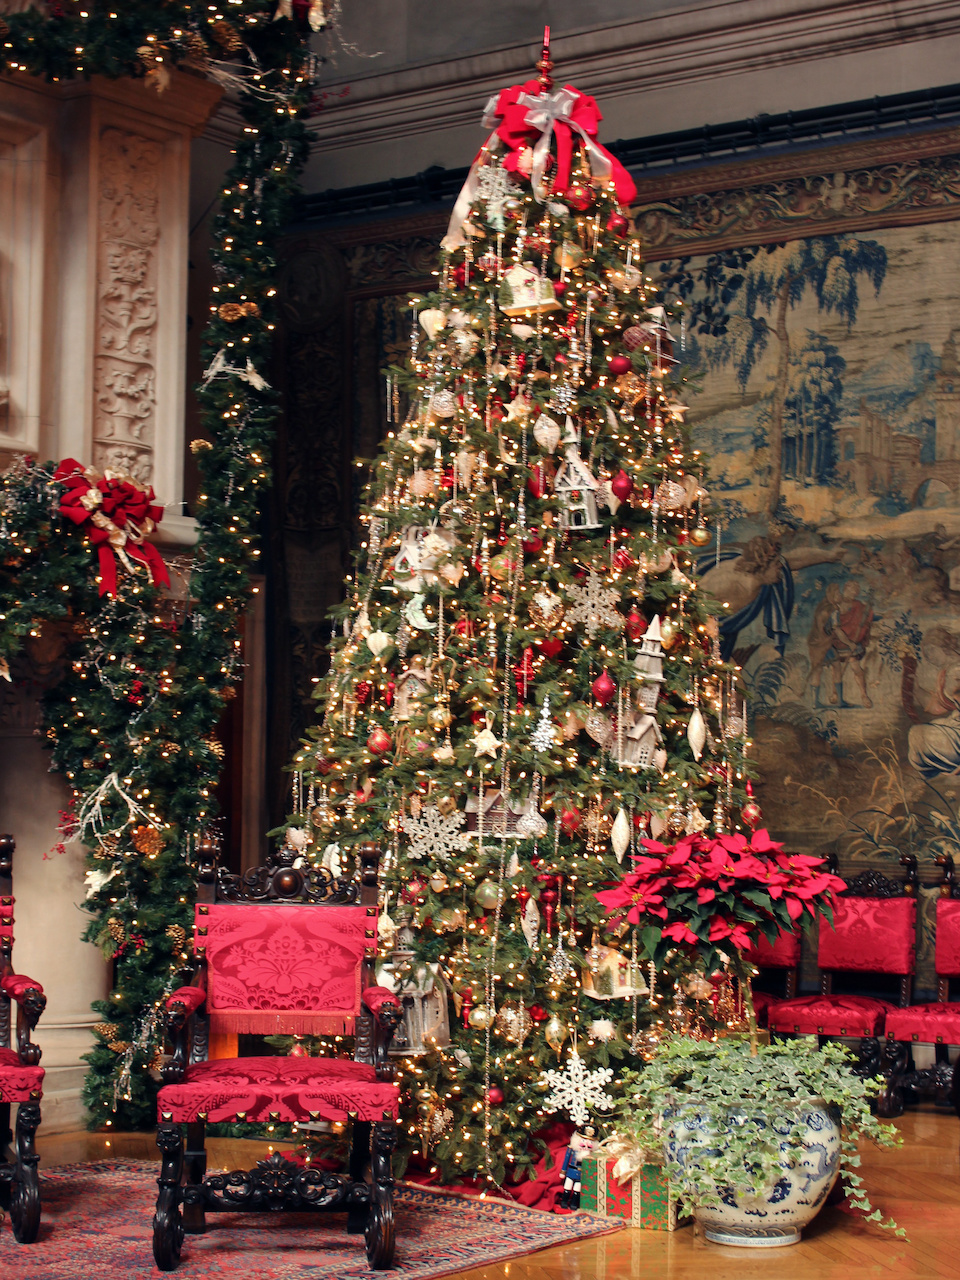 Christmas at Biltmore|styleblueprint.com